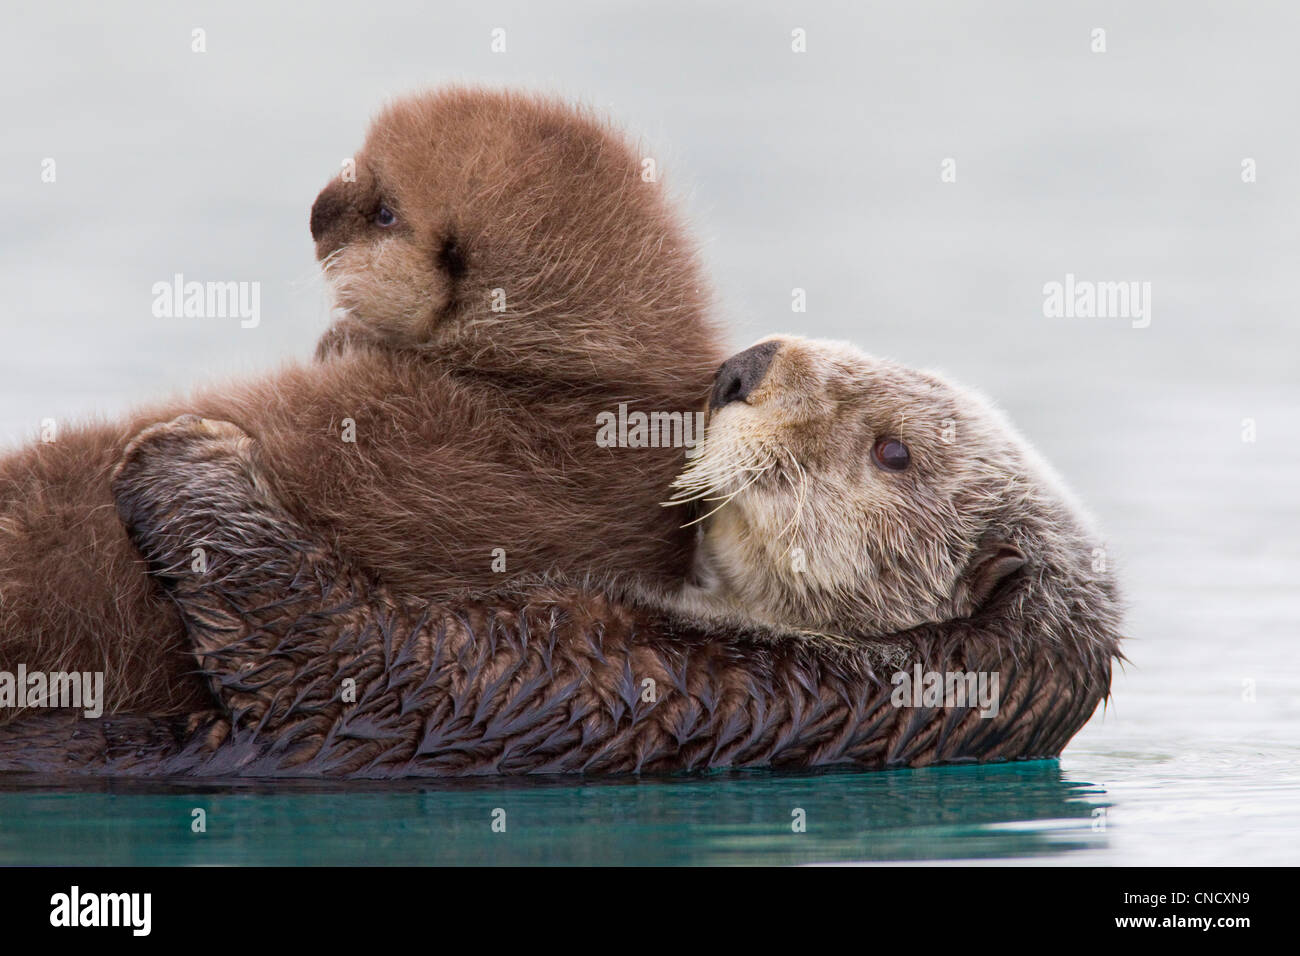 Female Sea otter holding newborn pup out of water, Prince William Sound, Southcentral Alaska, Winter Stock Photo